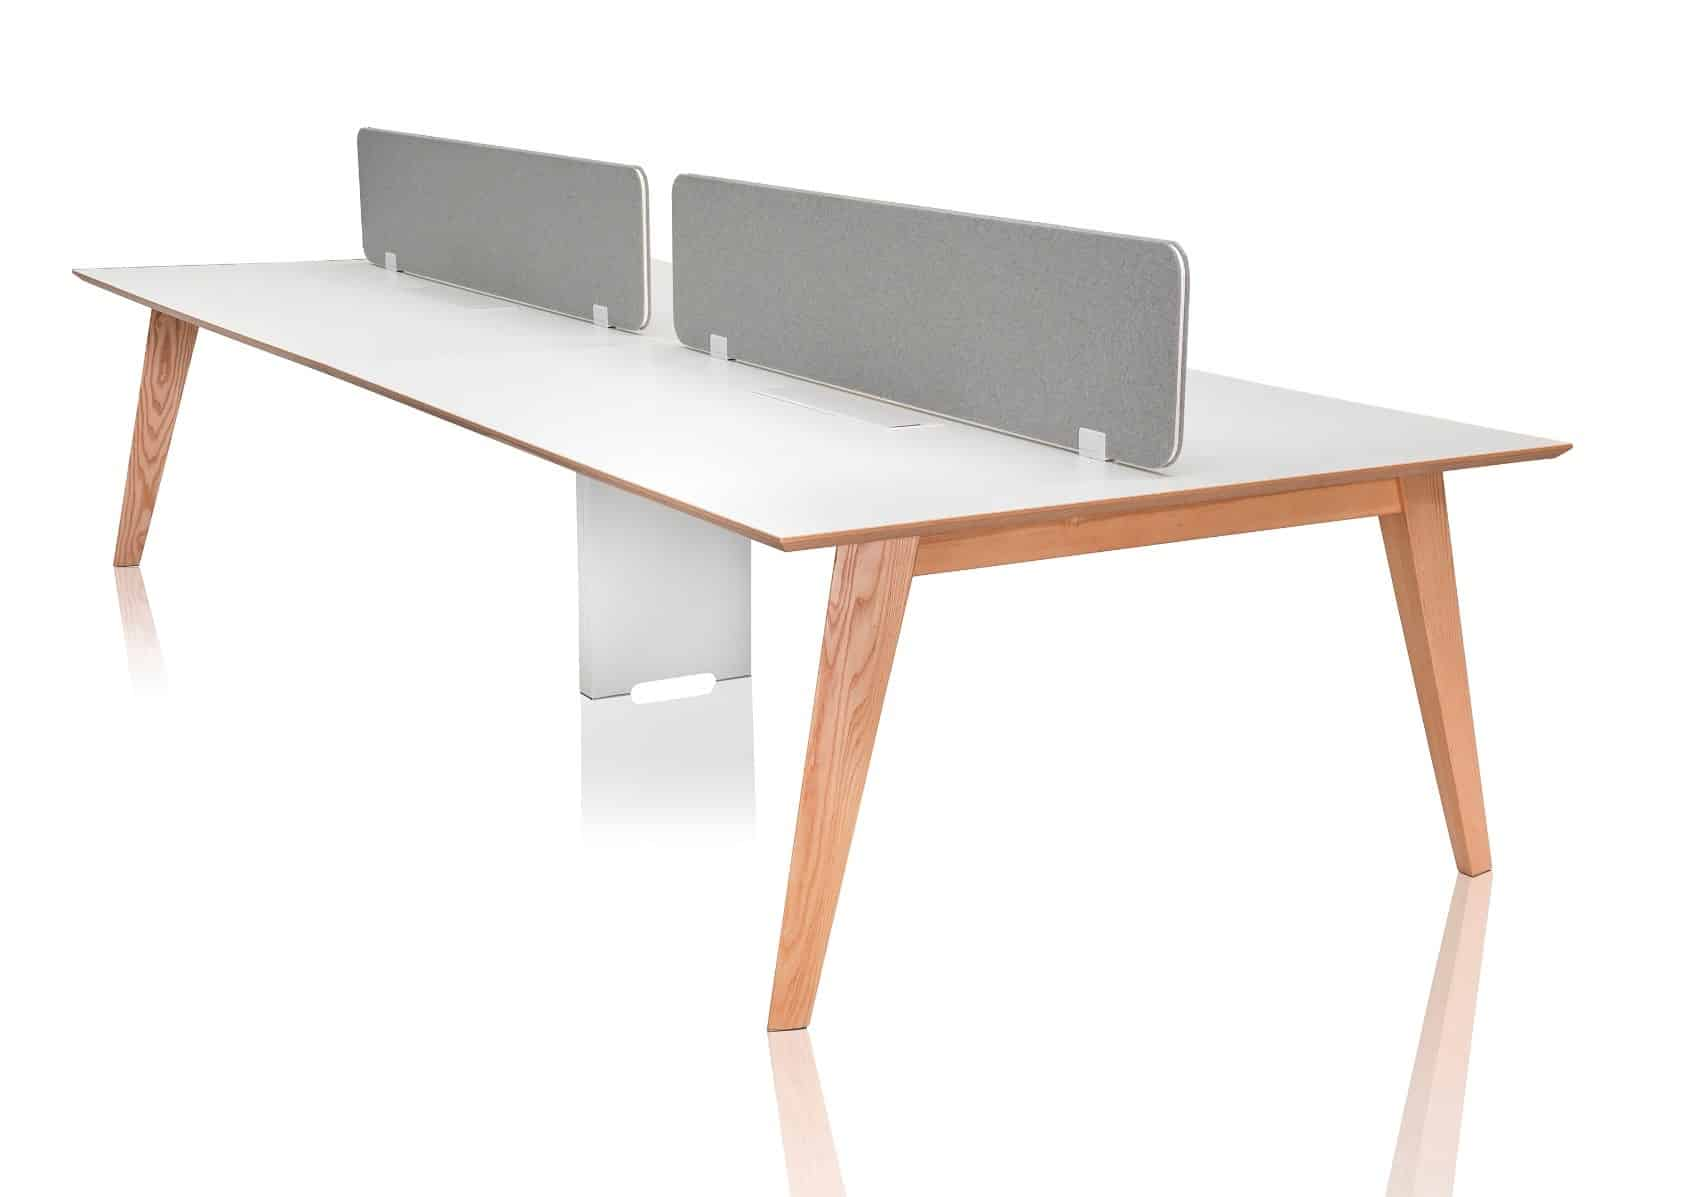 Serafino american oak office workstation with divider